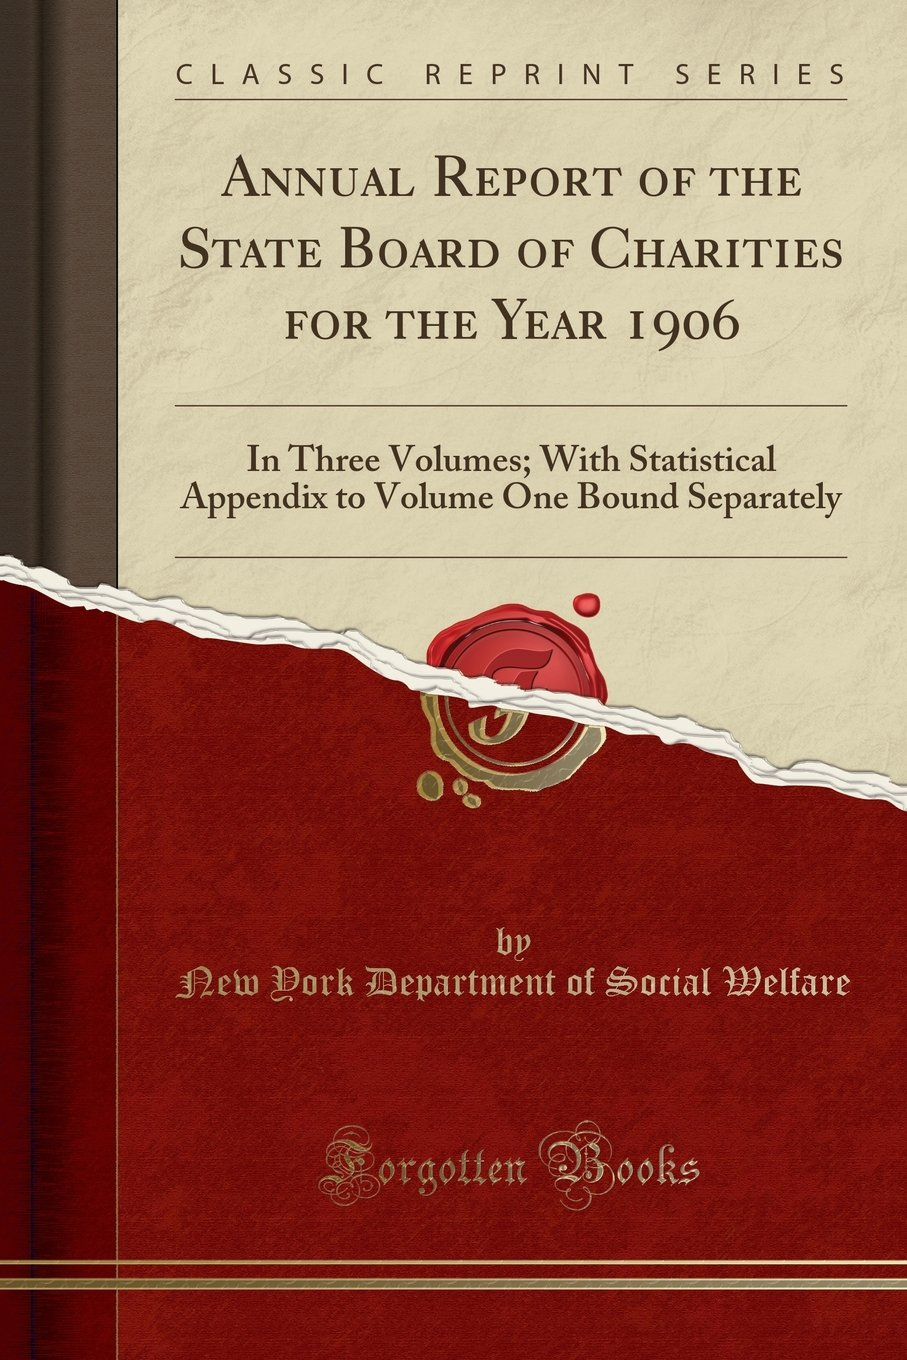 Annual Report of the State Board of Charities for the Year 1906: In Three Volumes; With Statistical Appendix to Volume One Bound Separately (Classic Reprint) ebook